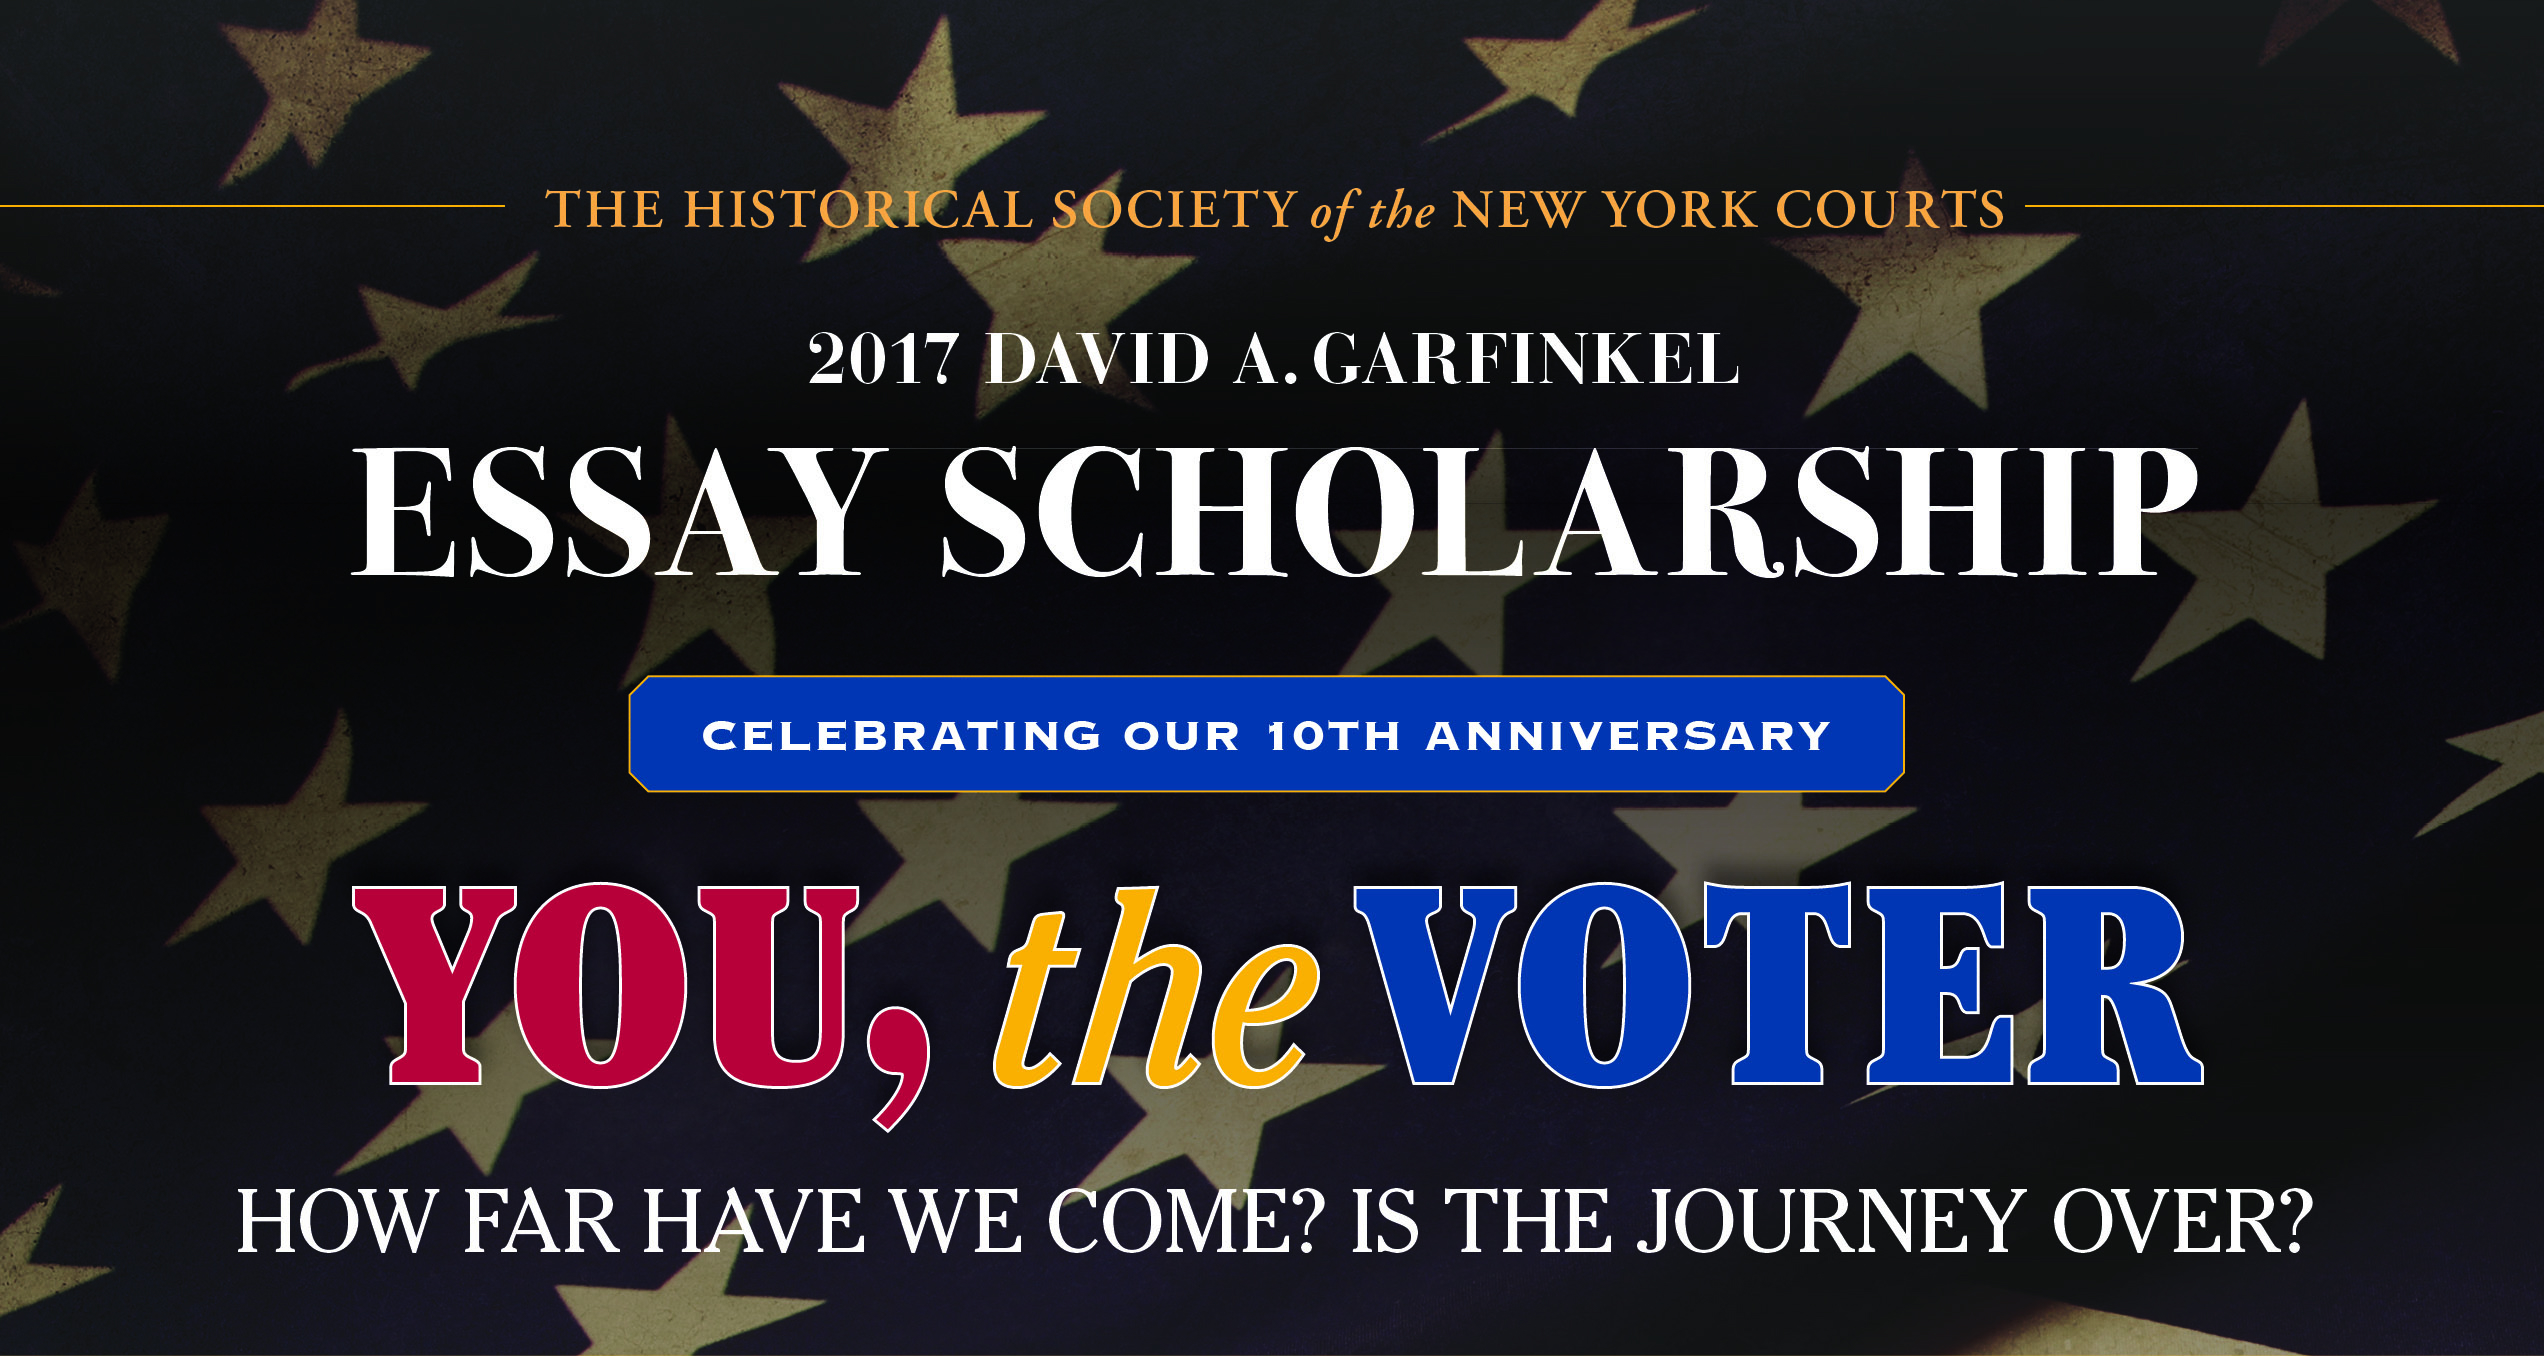 governors scholar essays Search from over 3 million scholarships worth more than $13 billion find money college search nj governor's school of art essay taggart registered user posts: the second asked for why we wished to go to governor's school in the first place i'd really appreciate some readers and.